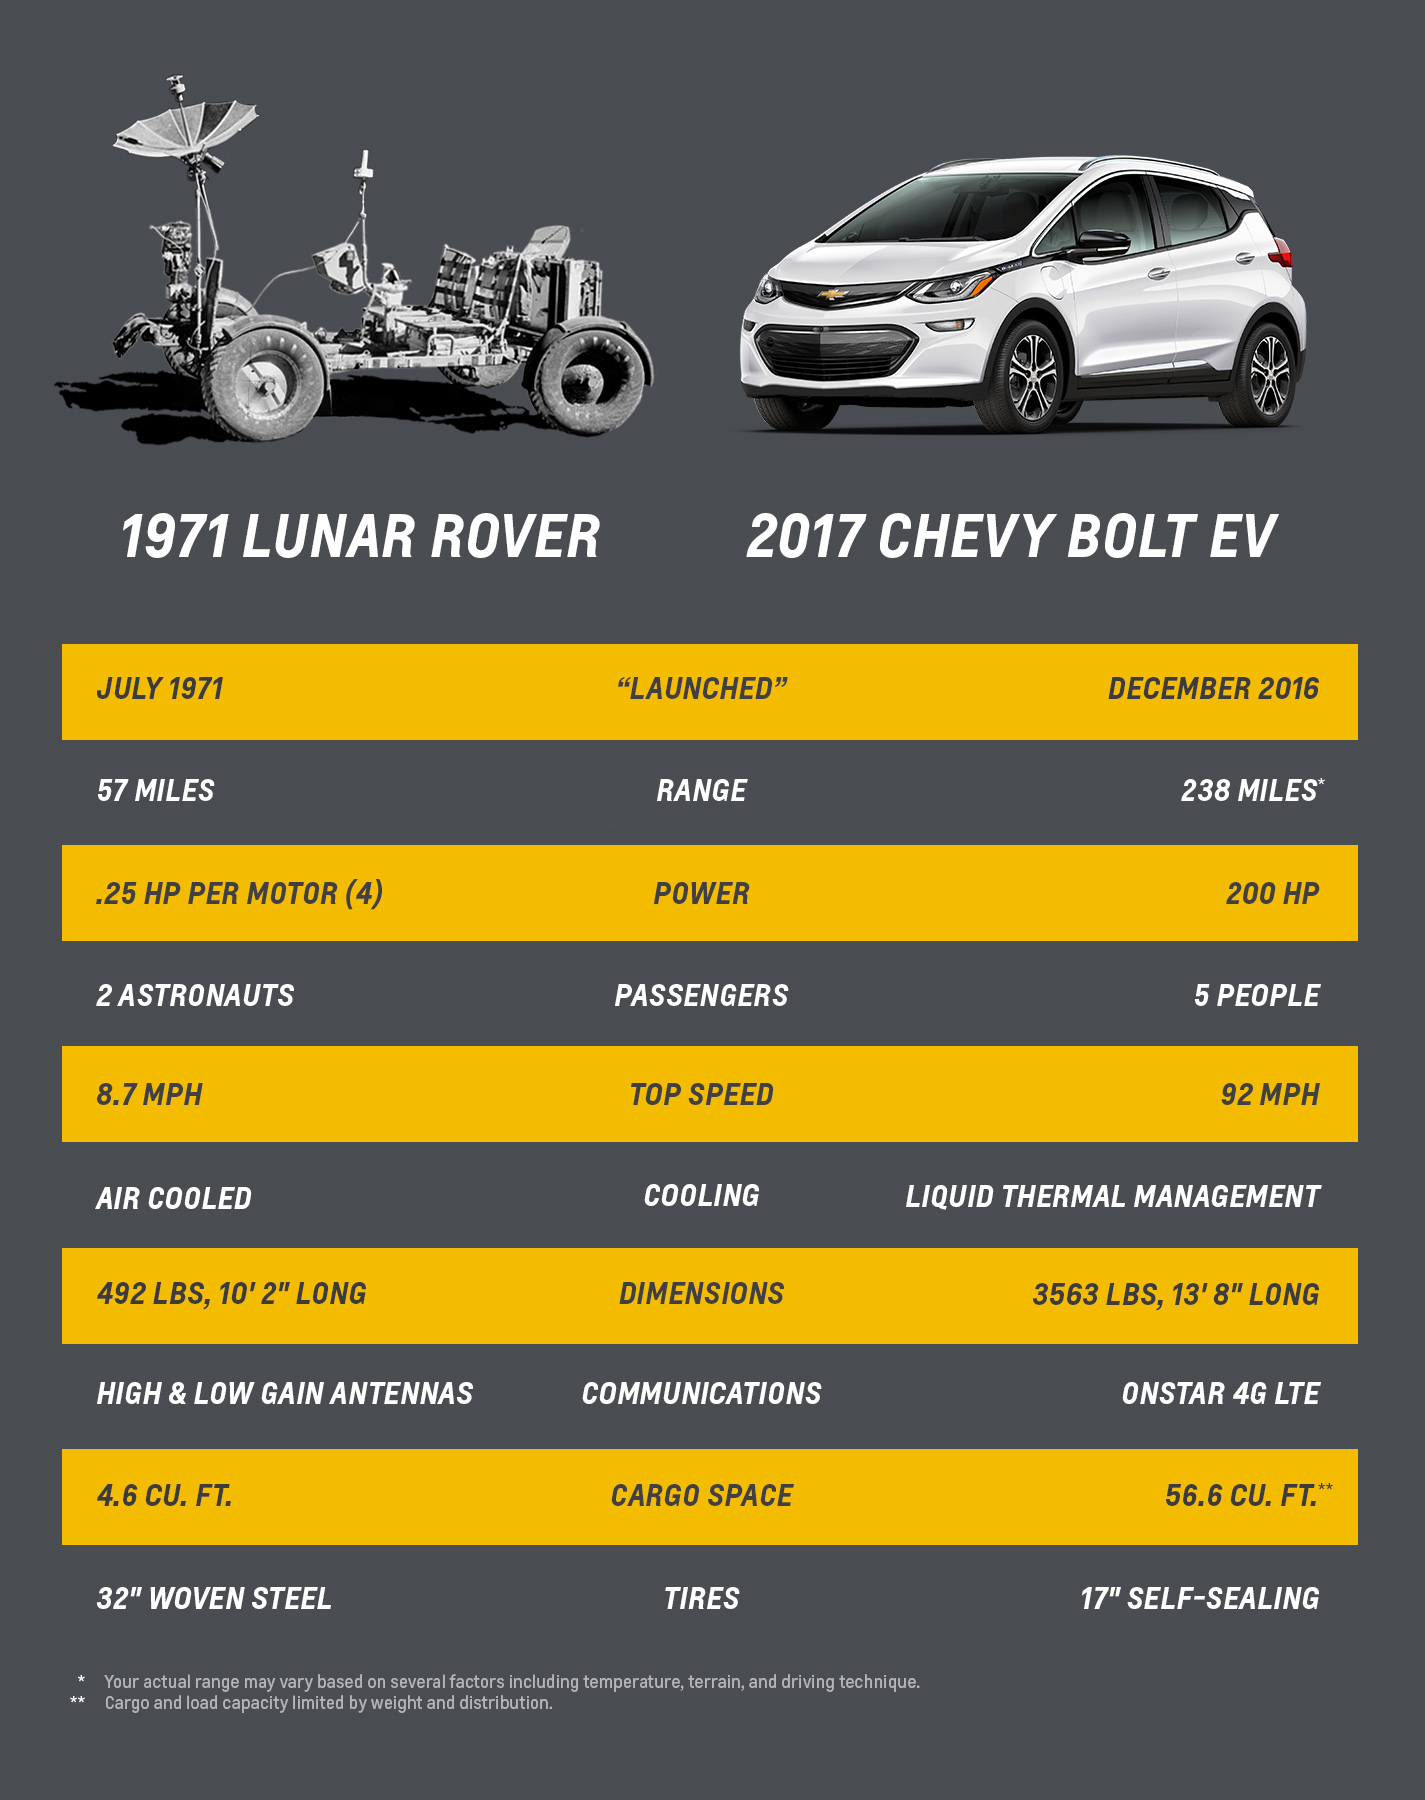 Chevrolet Brings All-Electric Vehicle Technology from the